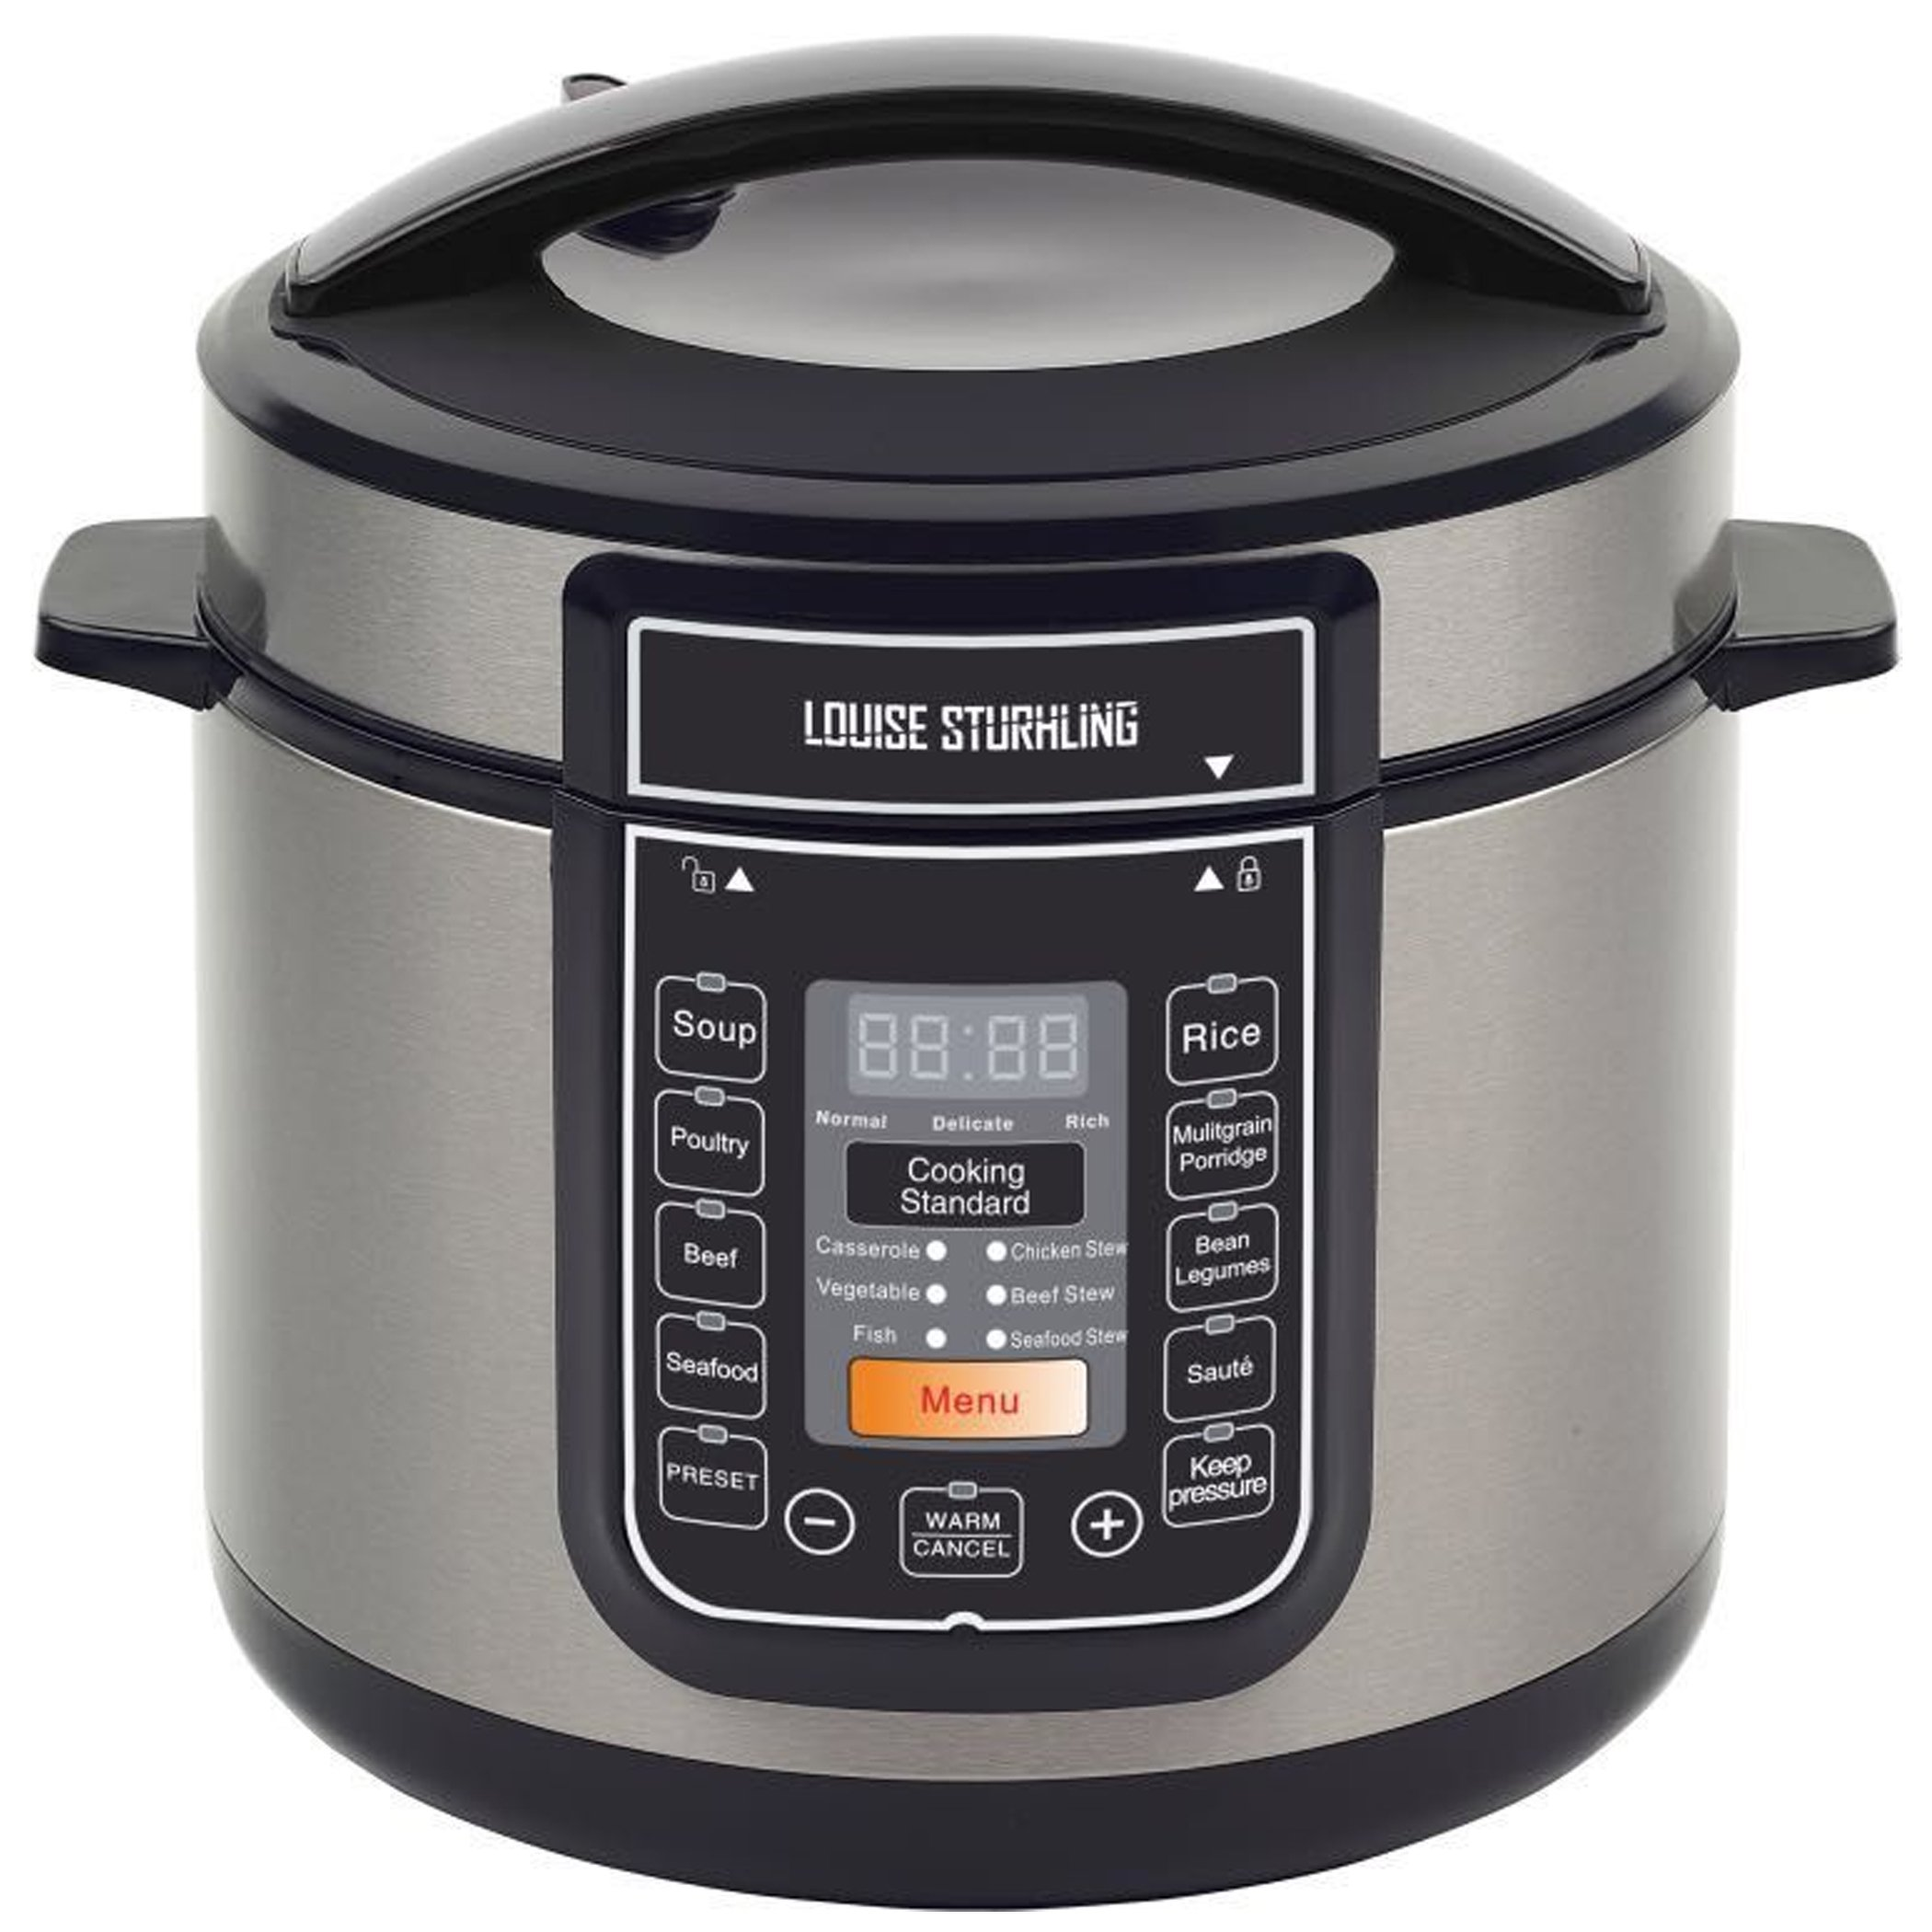 LOUISE STURHLING 10-in-1 Intelligent 6 Qt Pressure Cooker, 14 Programmed Menus, 7 Safety Features, High-Grade Stainless Steel Body, Durable Double Coated Non-Stick Pot, Plus FREE Cookbook